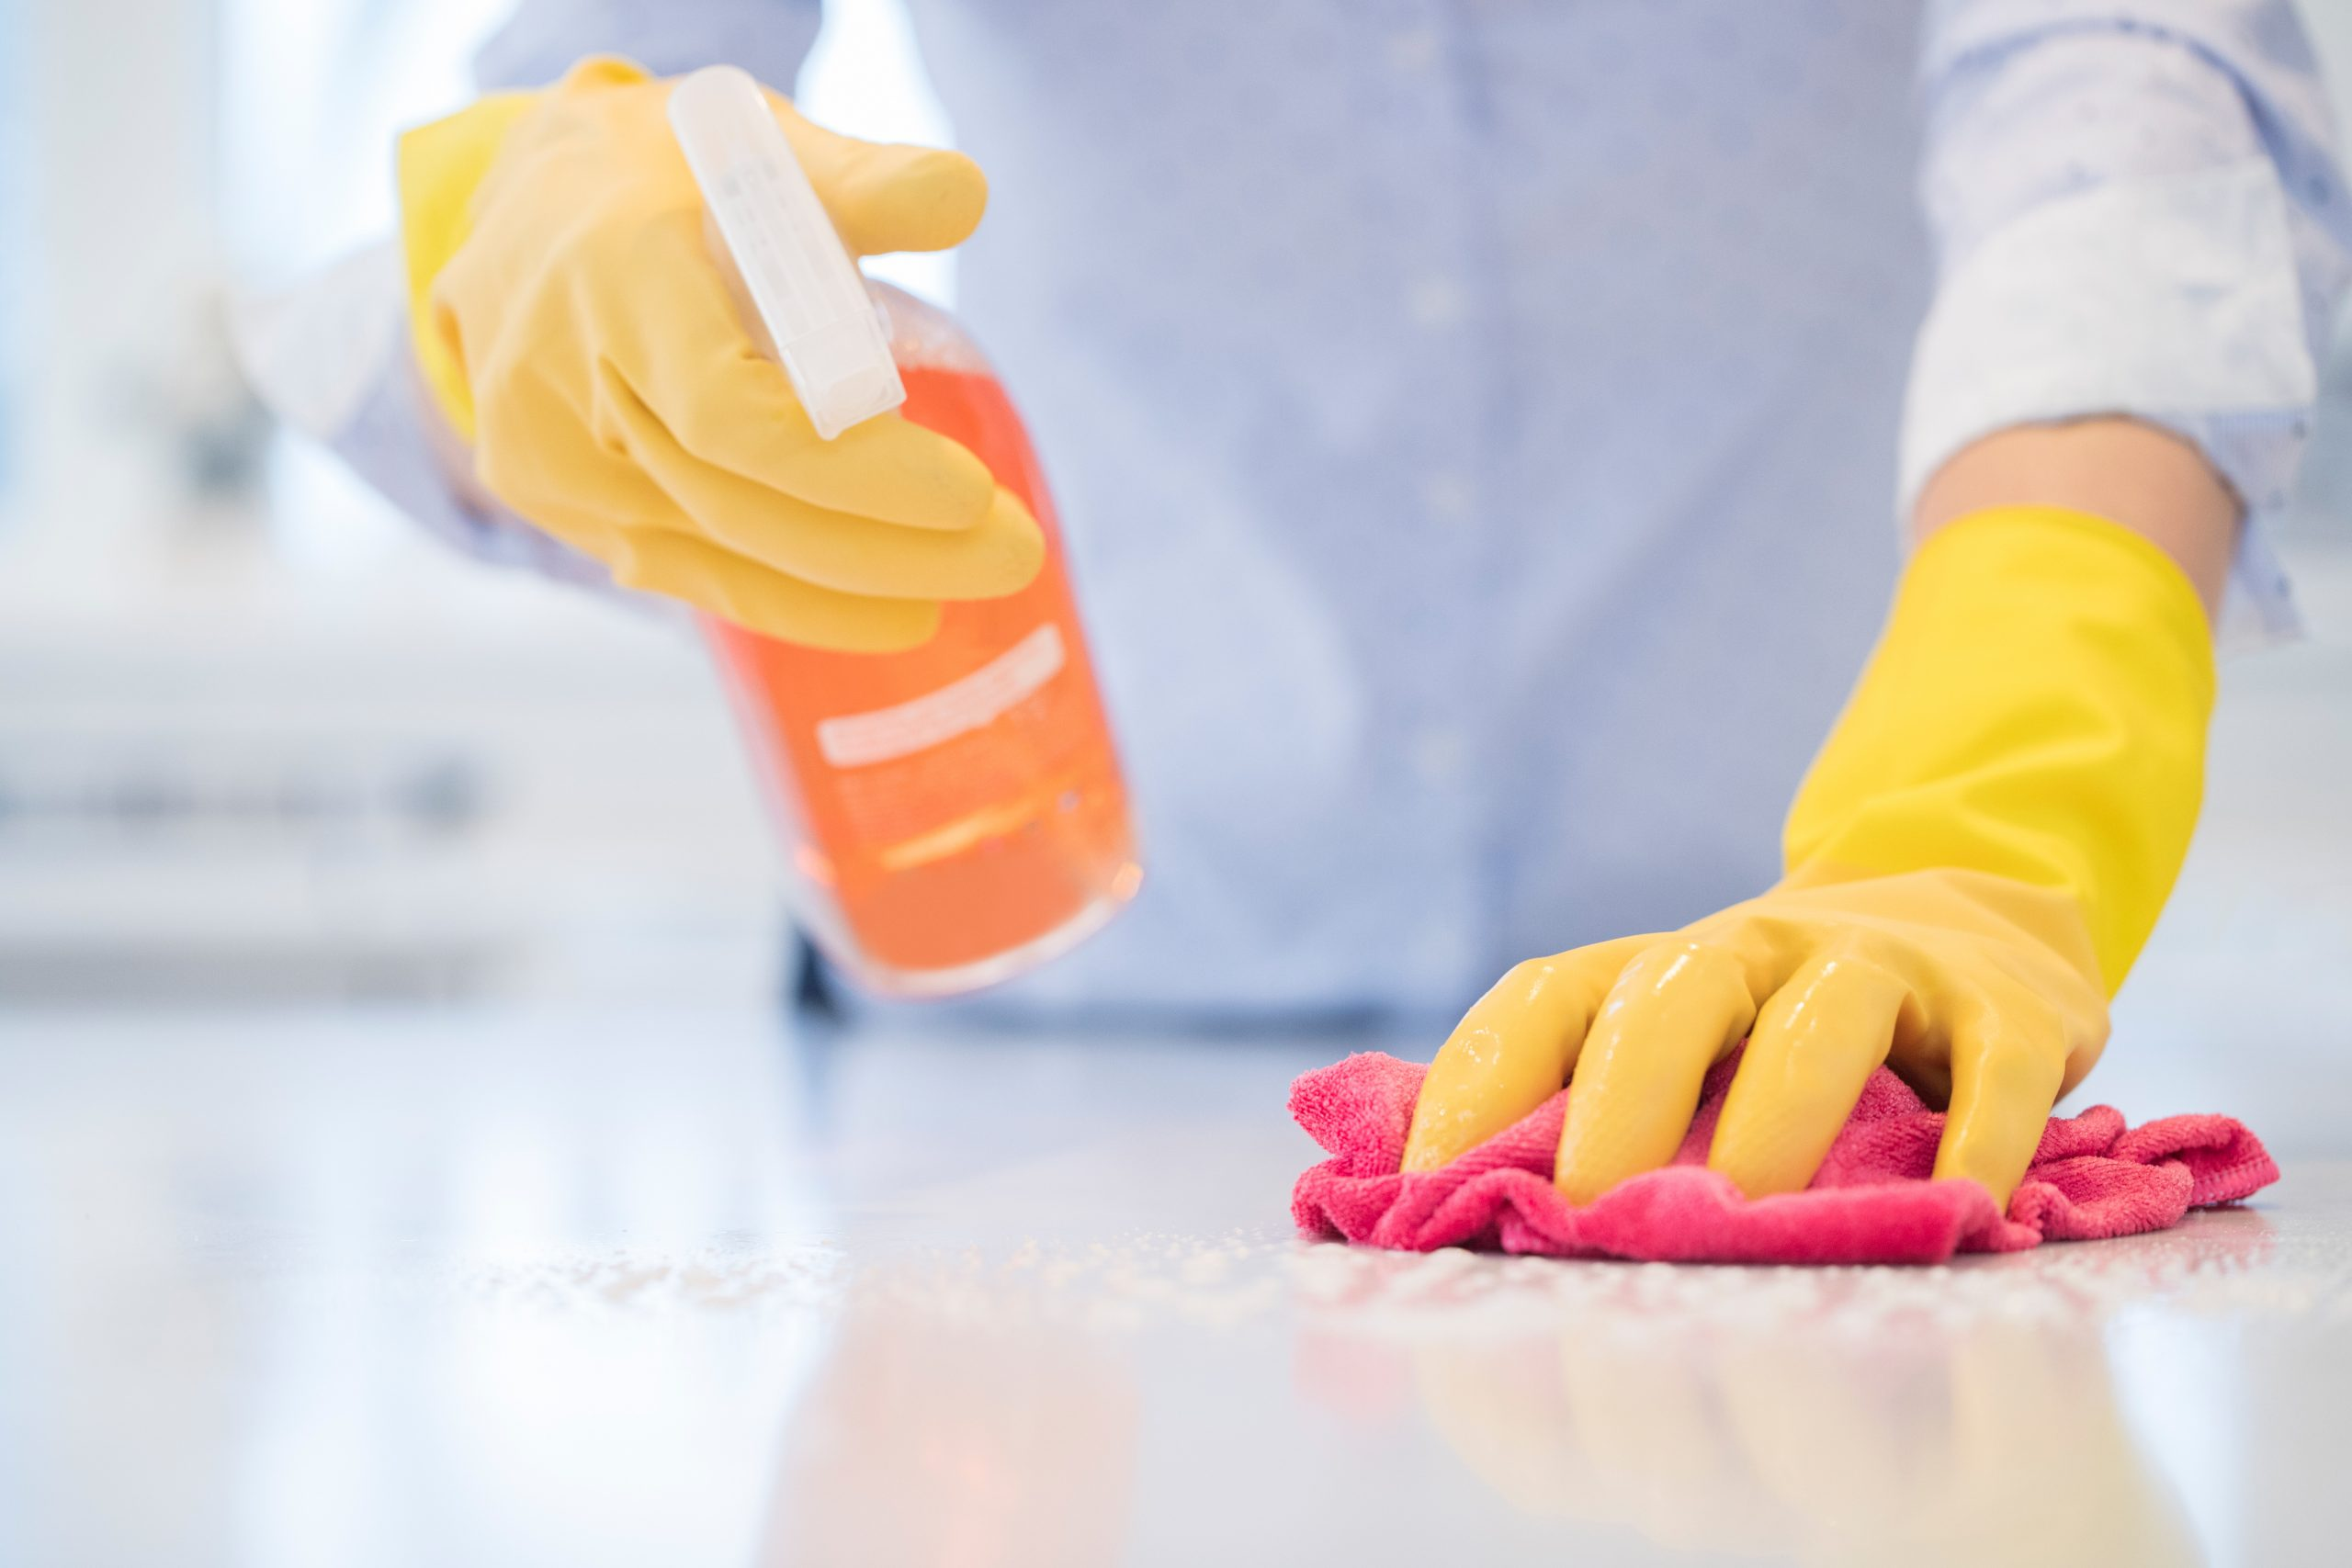 How to Clean and Disinfect Your Apartment